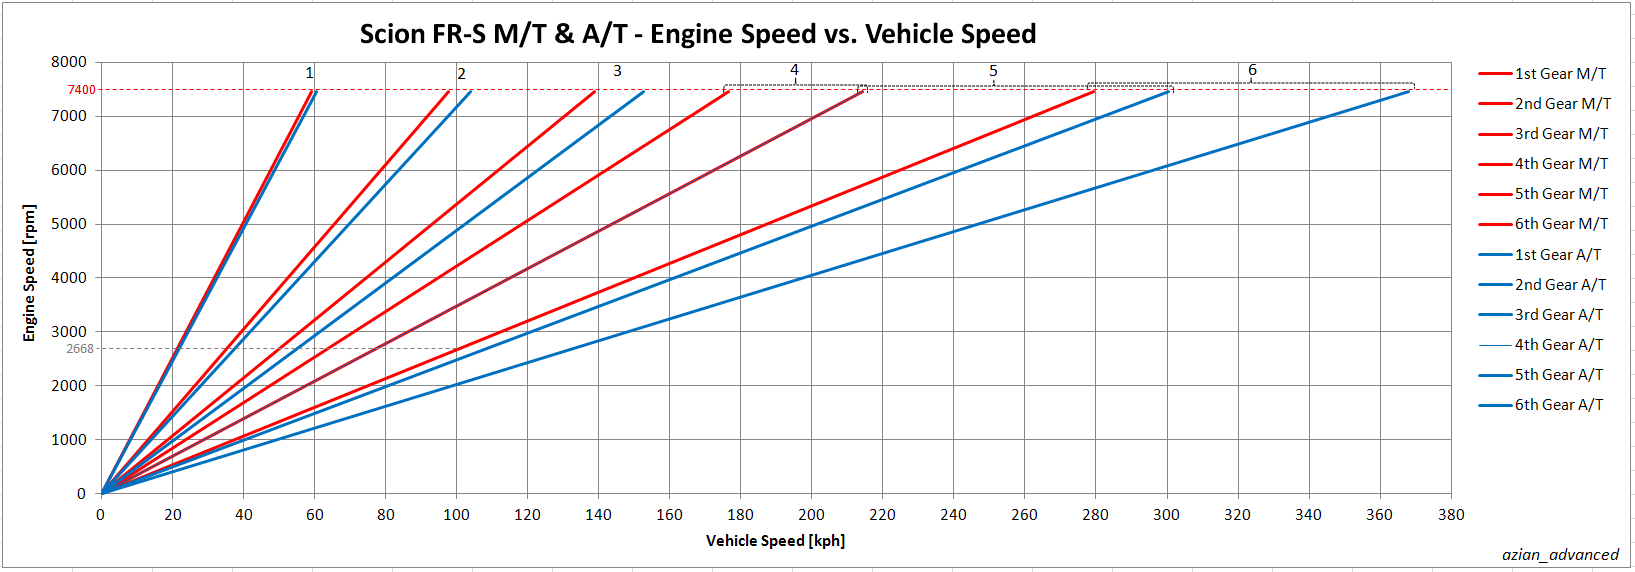 ScionFR-S-EngineSpeedvsVehicleSpeed-KPH